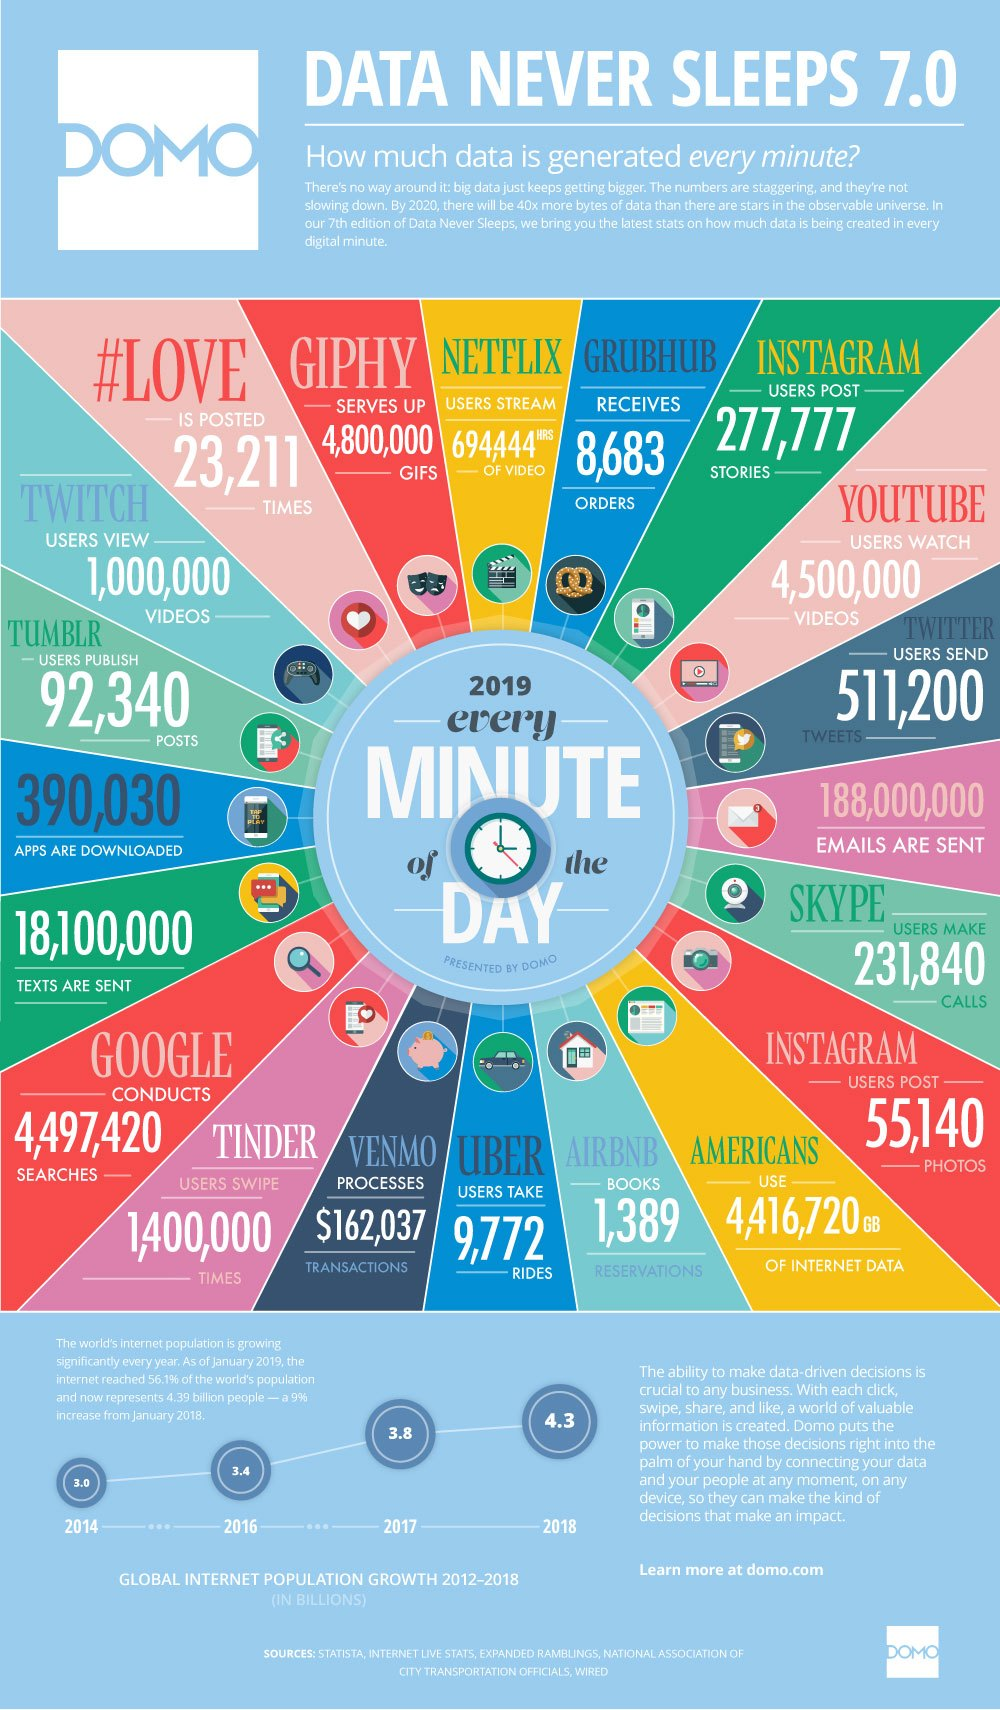 Data Never Sleeps 7.0 - how much data is generated every minute?